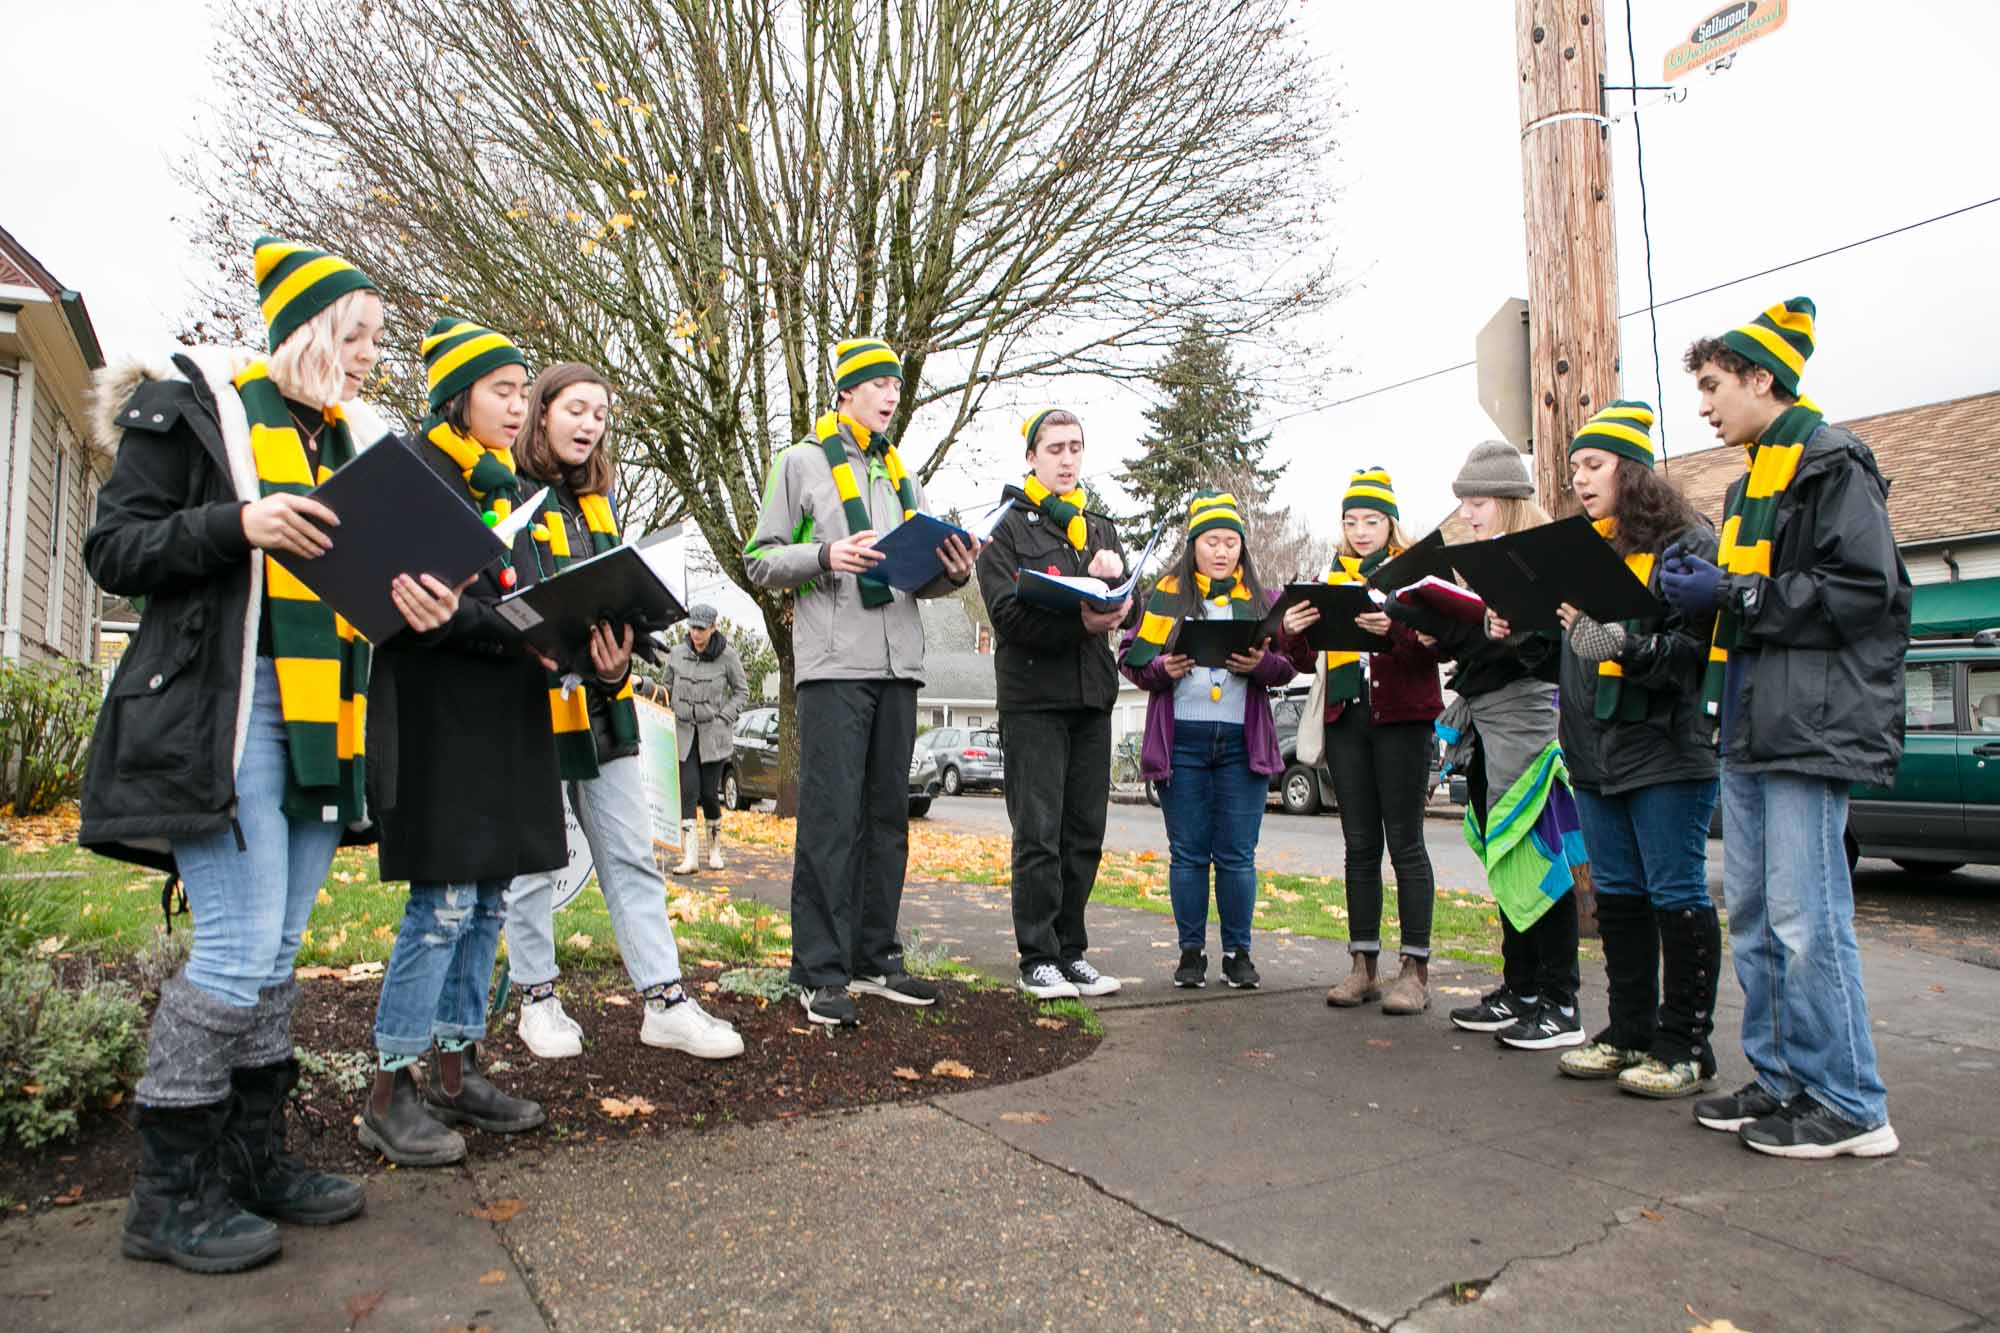 Cleveland Choir caroling for visitors of Decemberville in Sellwood.